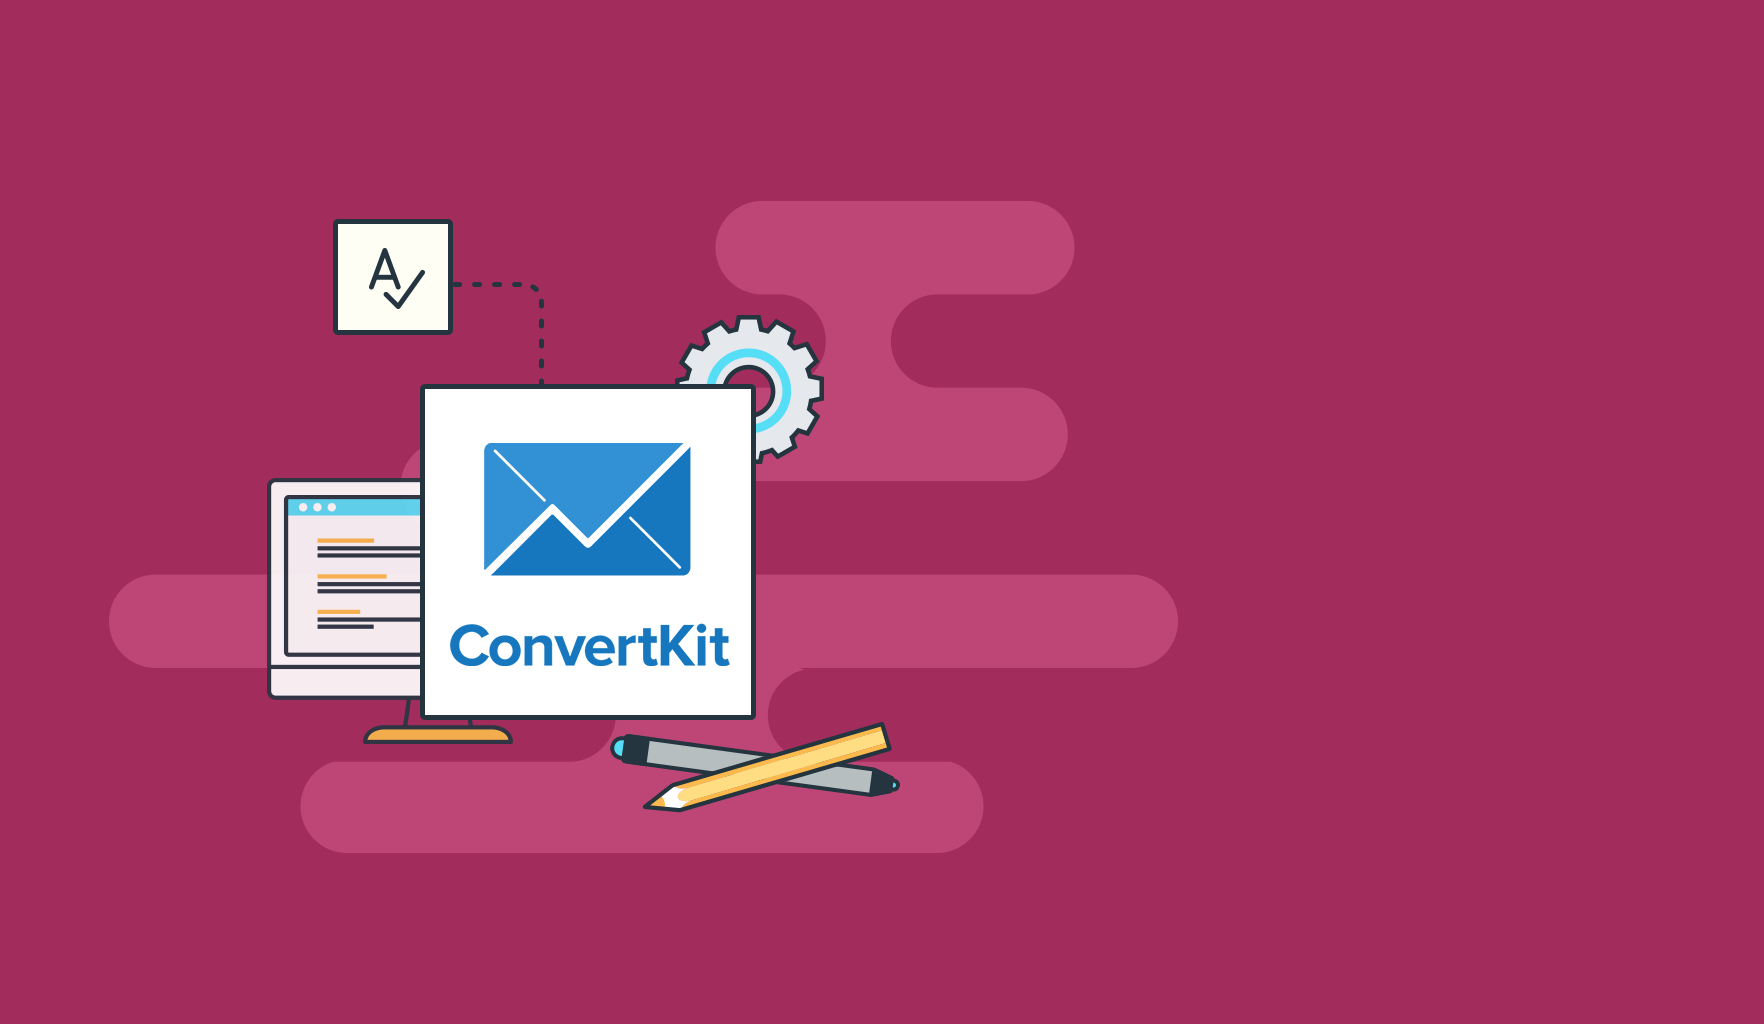 Verified Promotional Code Convertkit